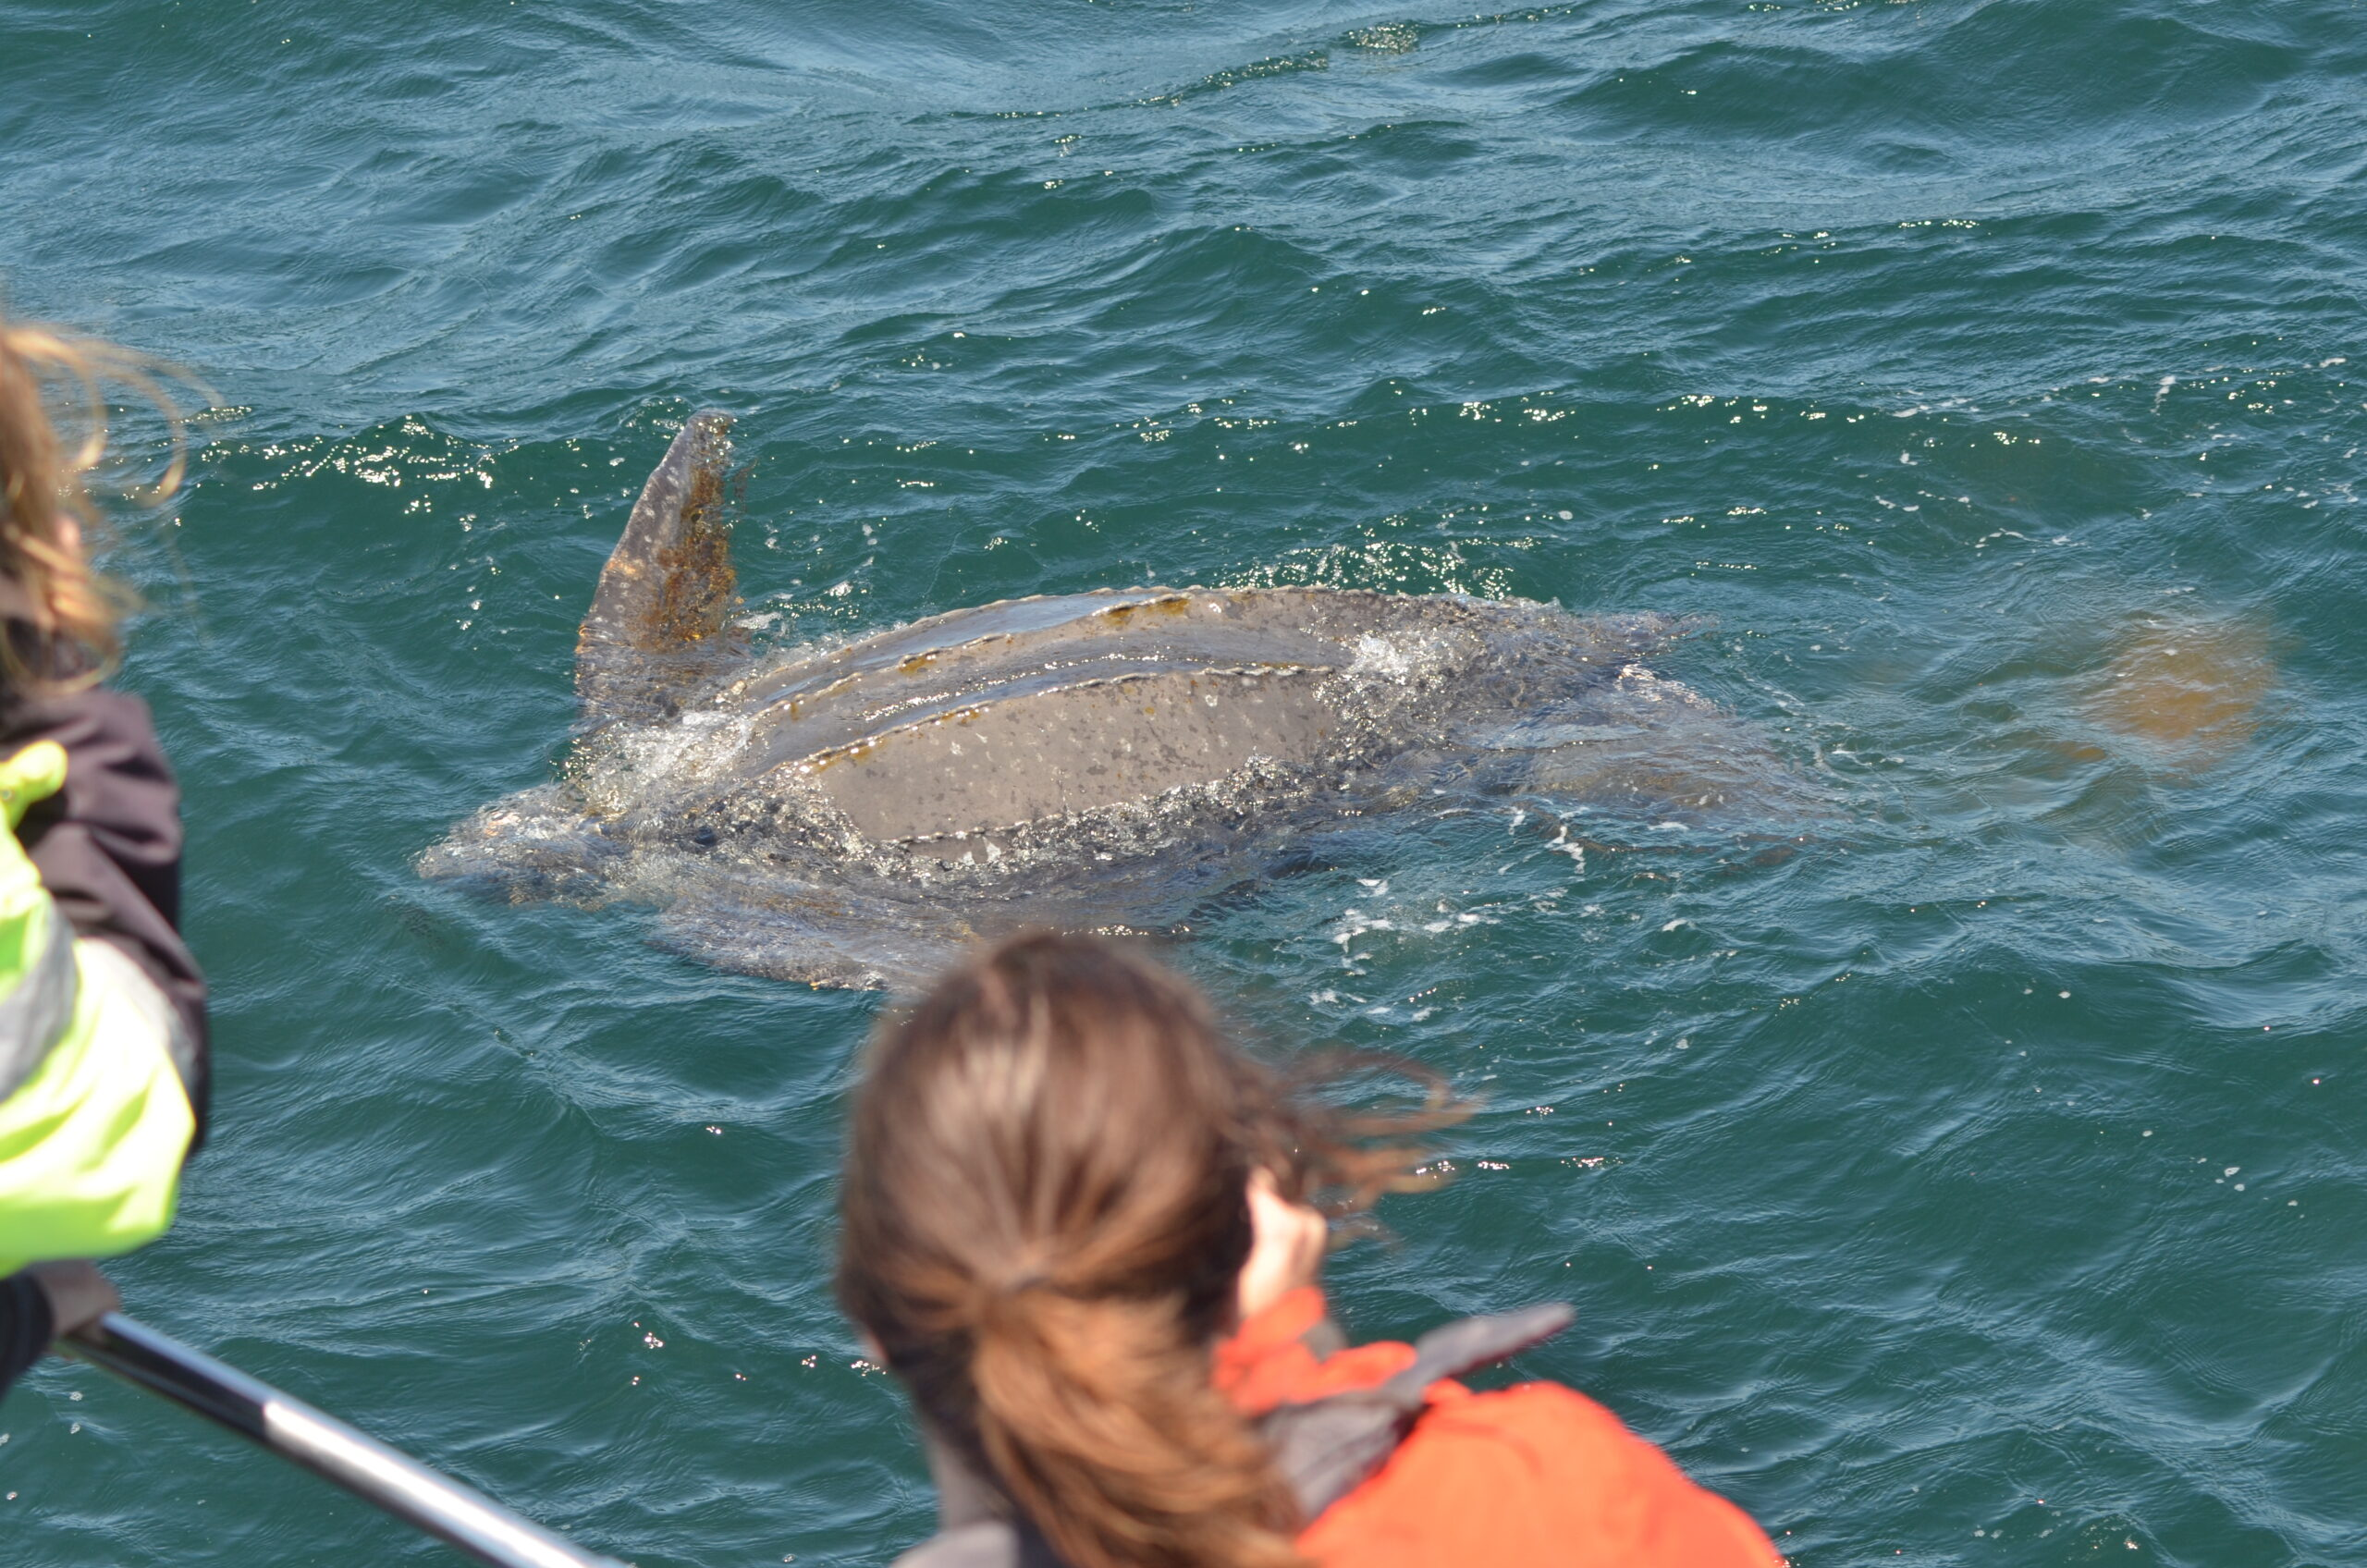 Endangered Leatherback Sea Turtles Sighted in Monterey Bay Sanctuary